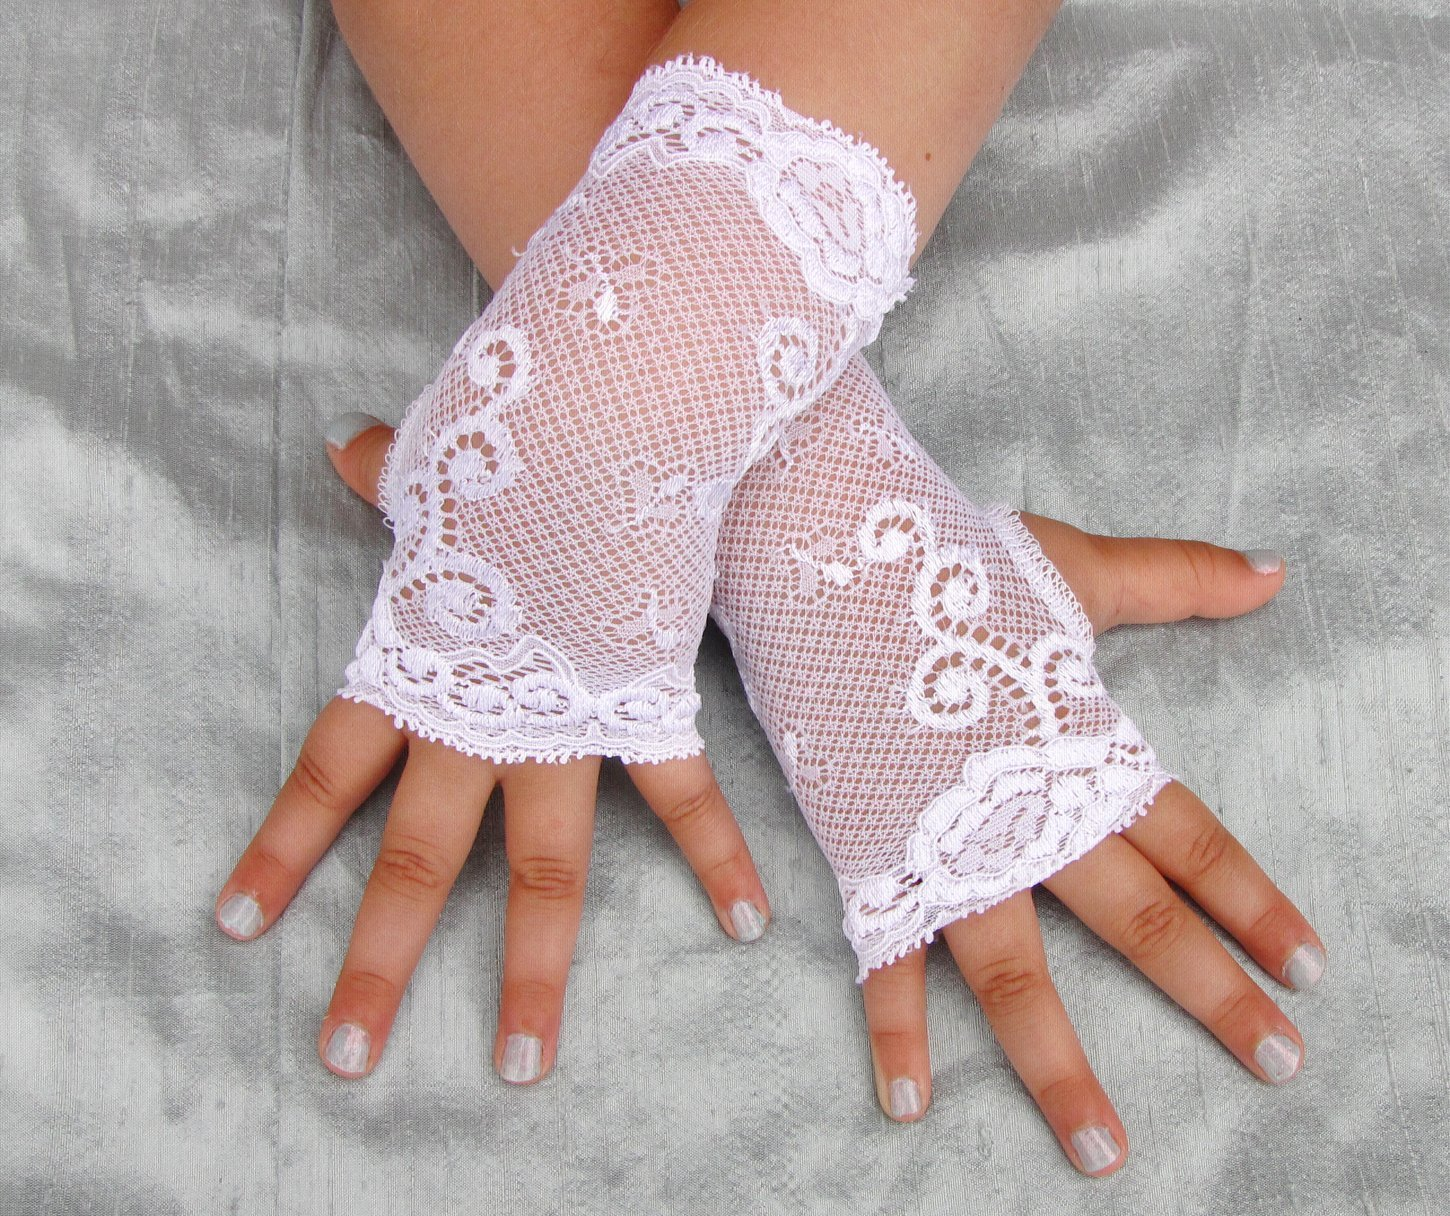 White Lace Fingerless Gloves for Girls Toddlers